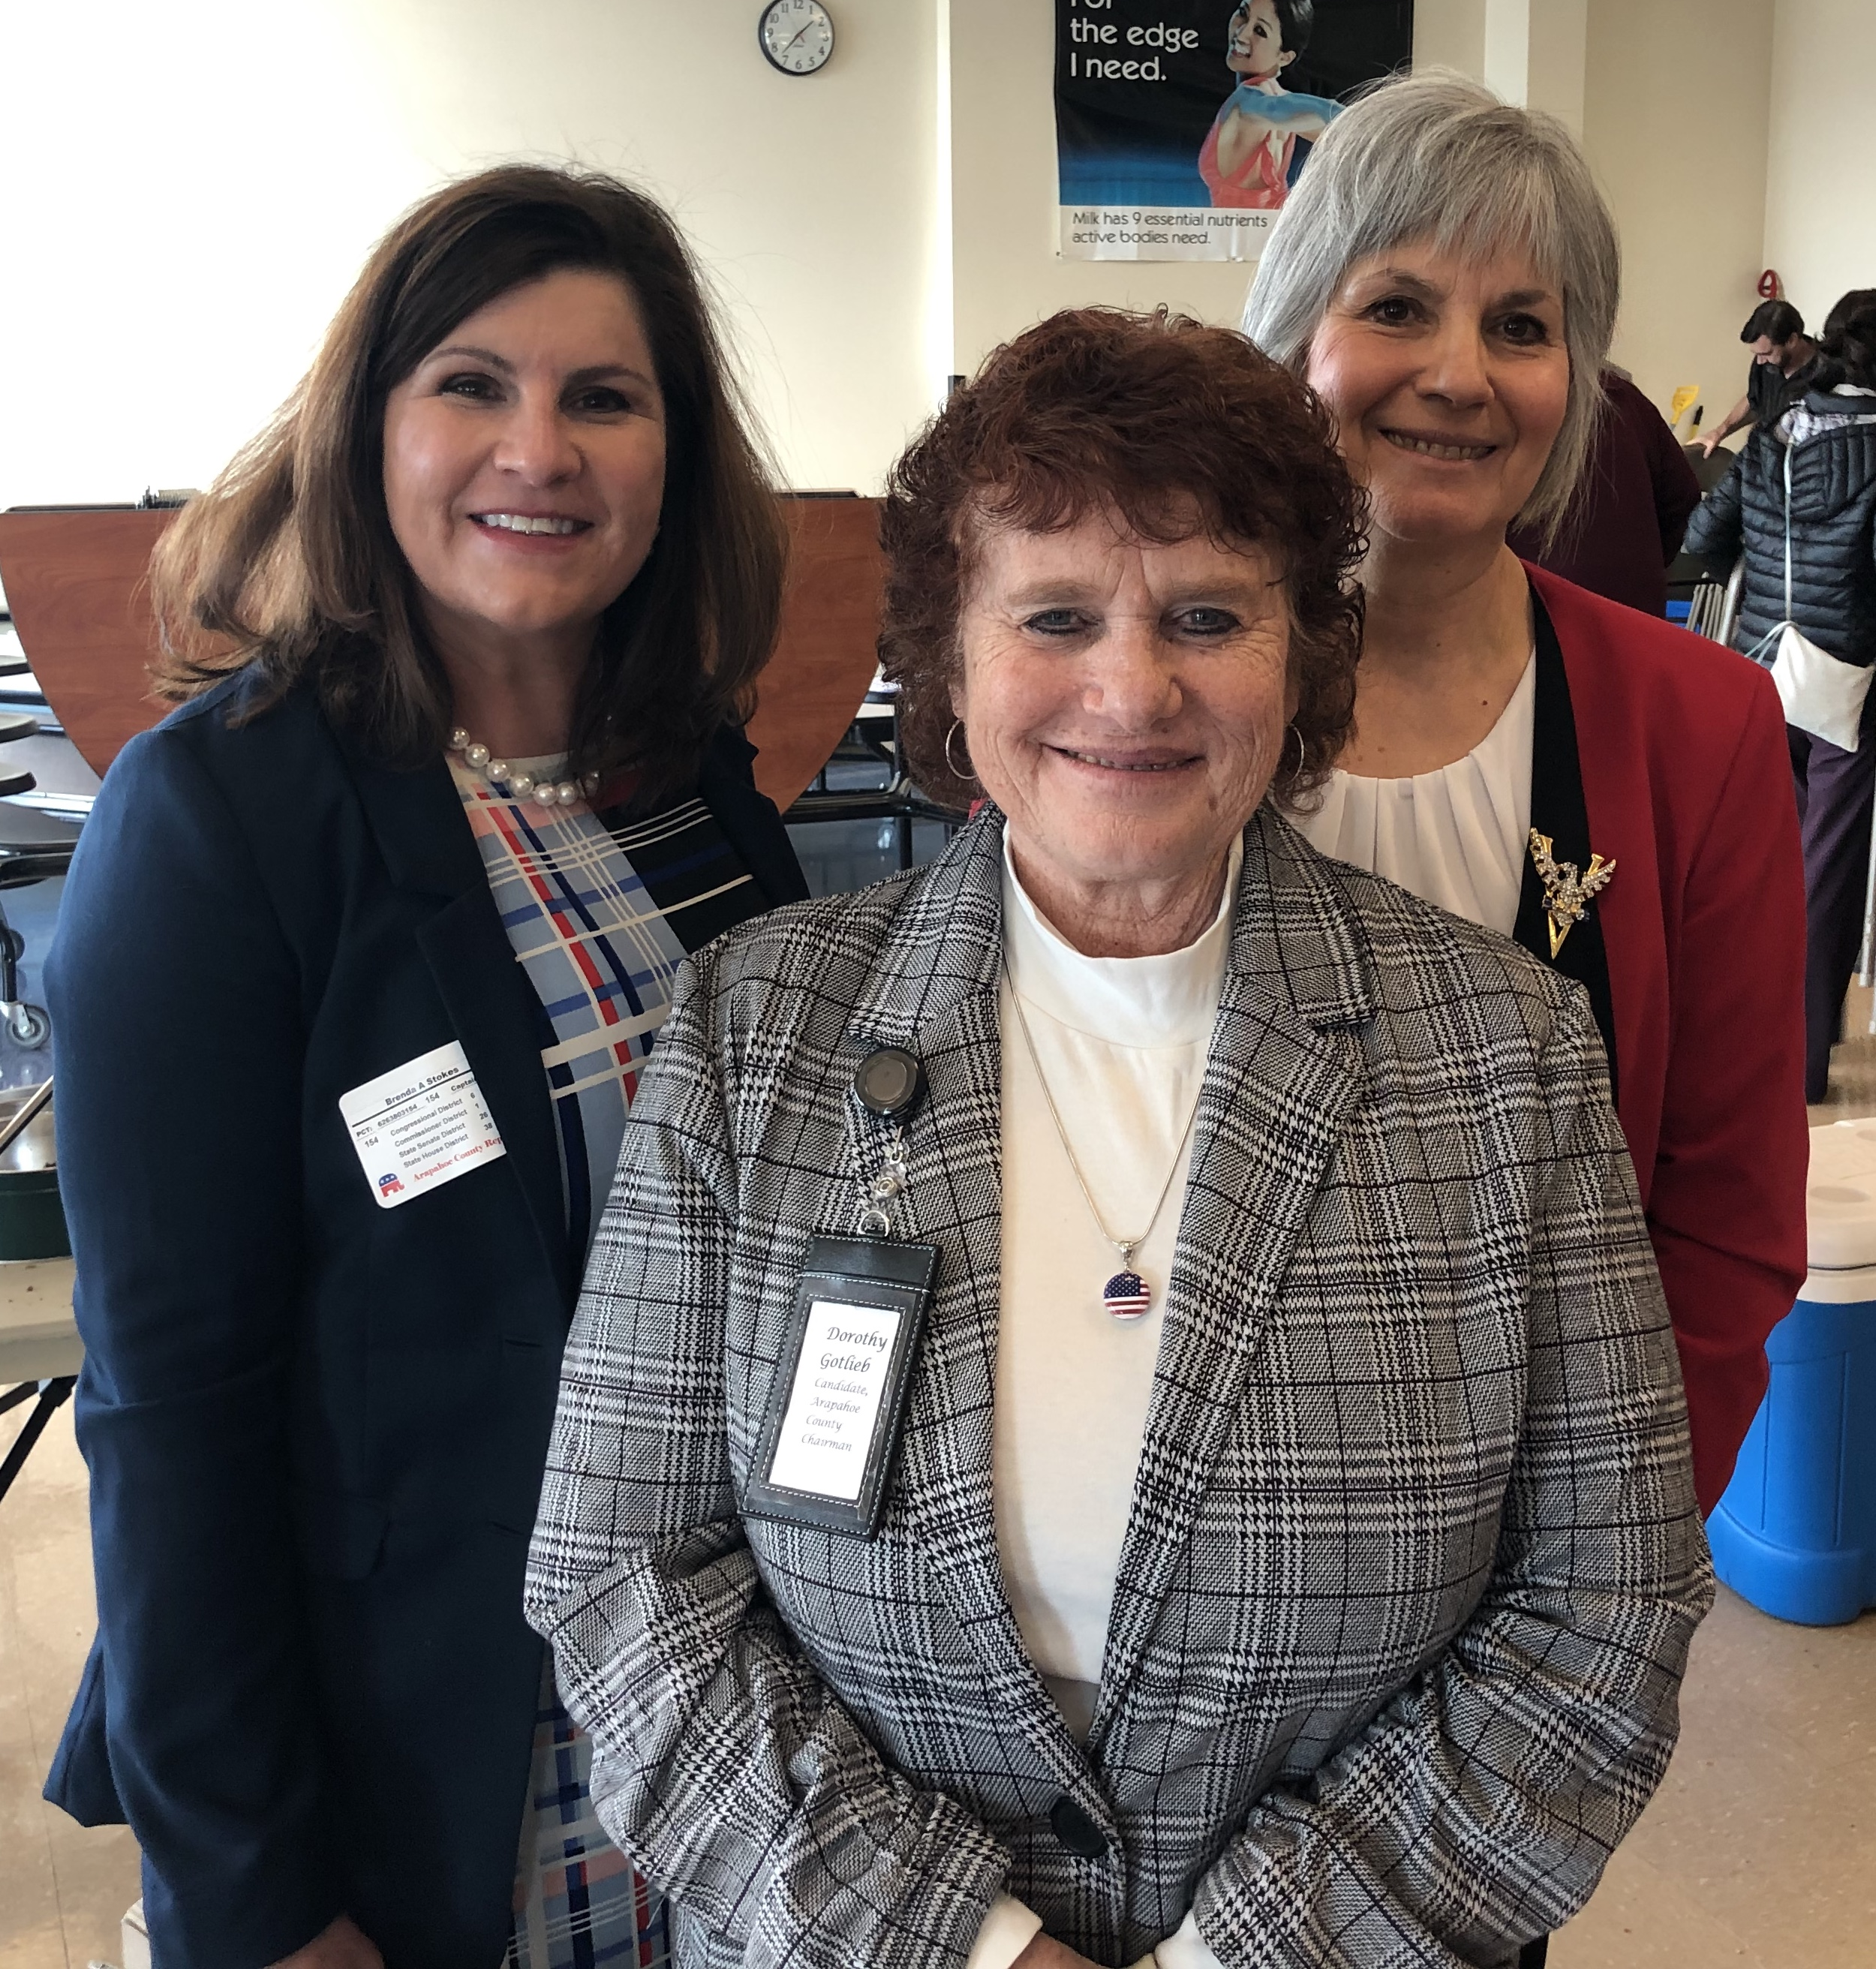 Please welcome our new county leadership! Brenda Stokes, left, Vice-chair. Dorothy Gotlieb middle, Chair. Pam Cirbo, right, Secretary. -